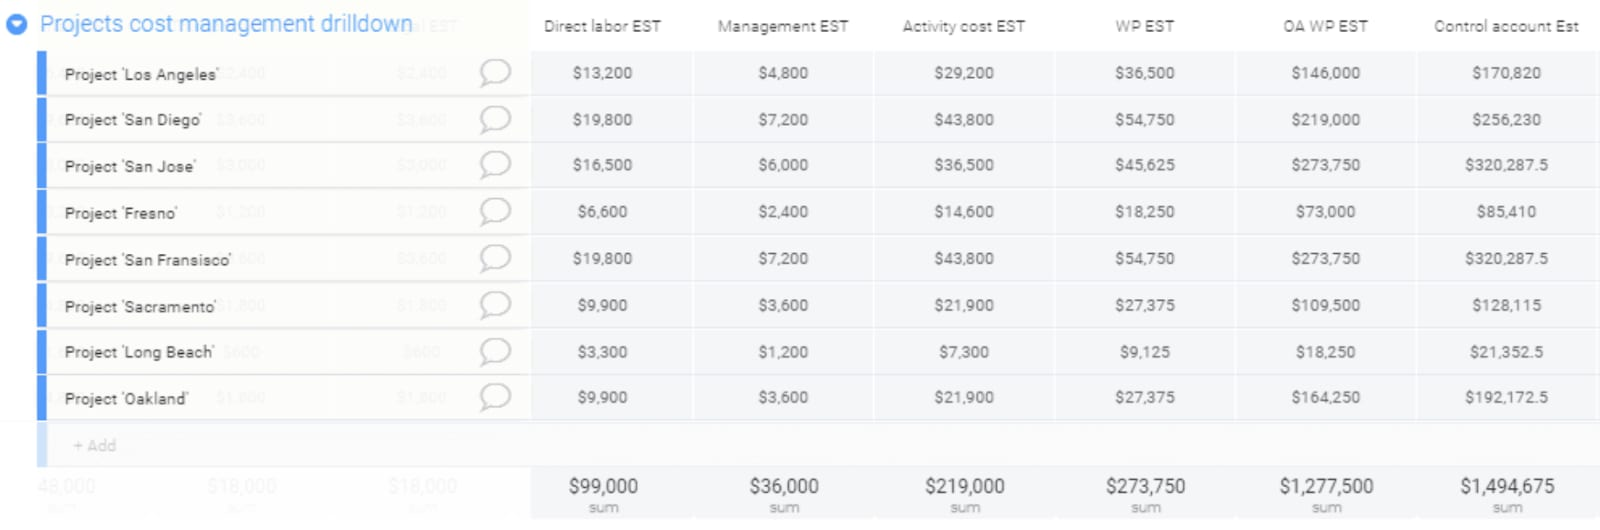 monday.com Project Cost Management Template